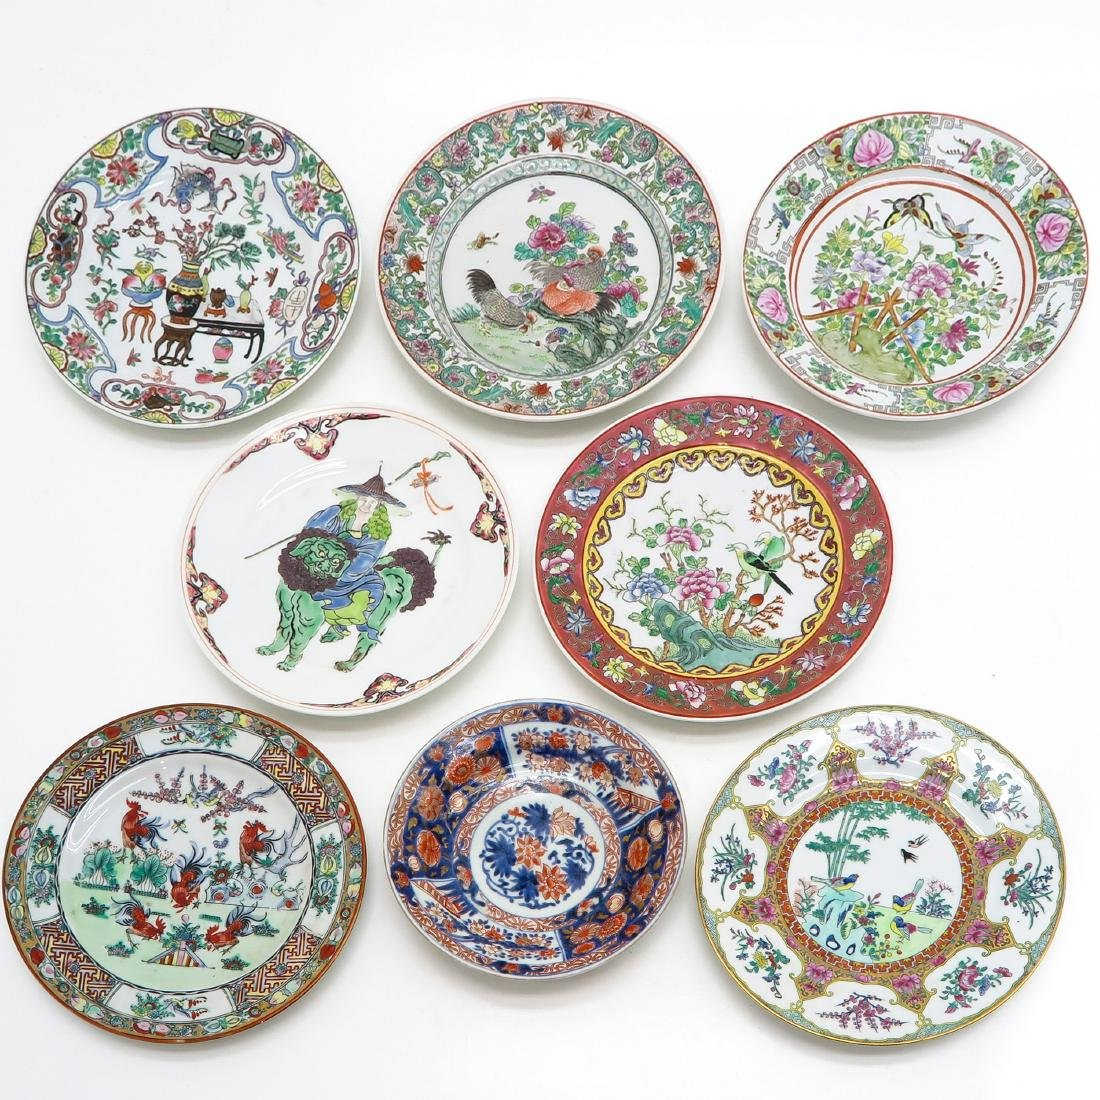 A Diverse Lot of 8 Plates